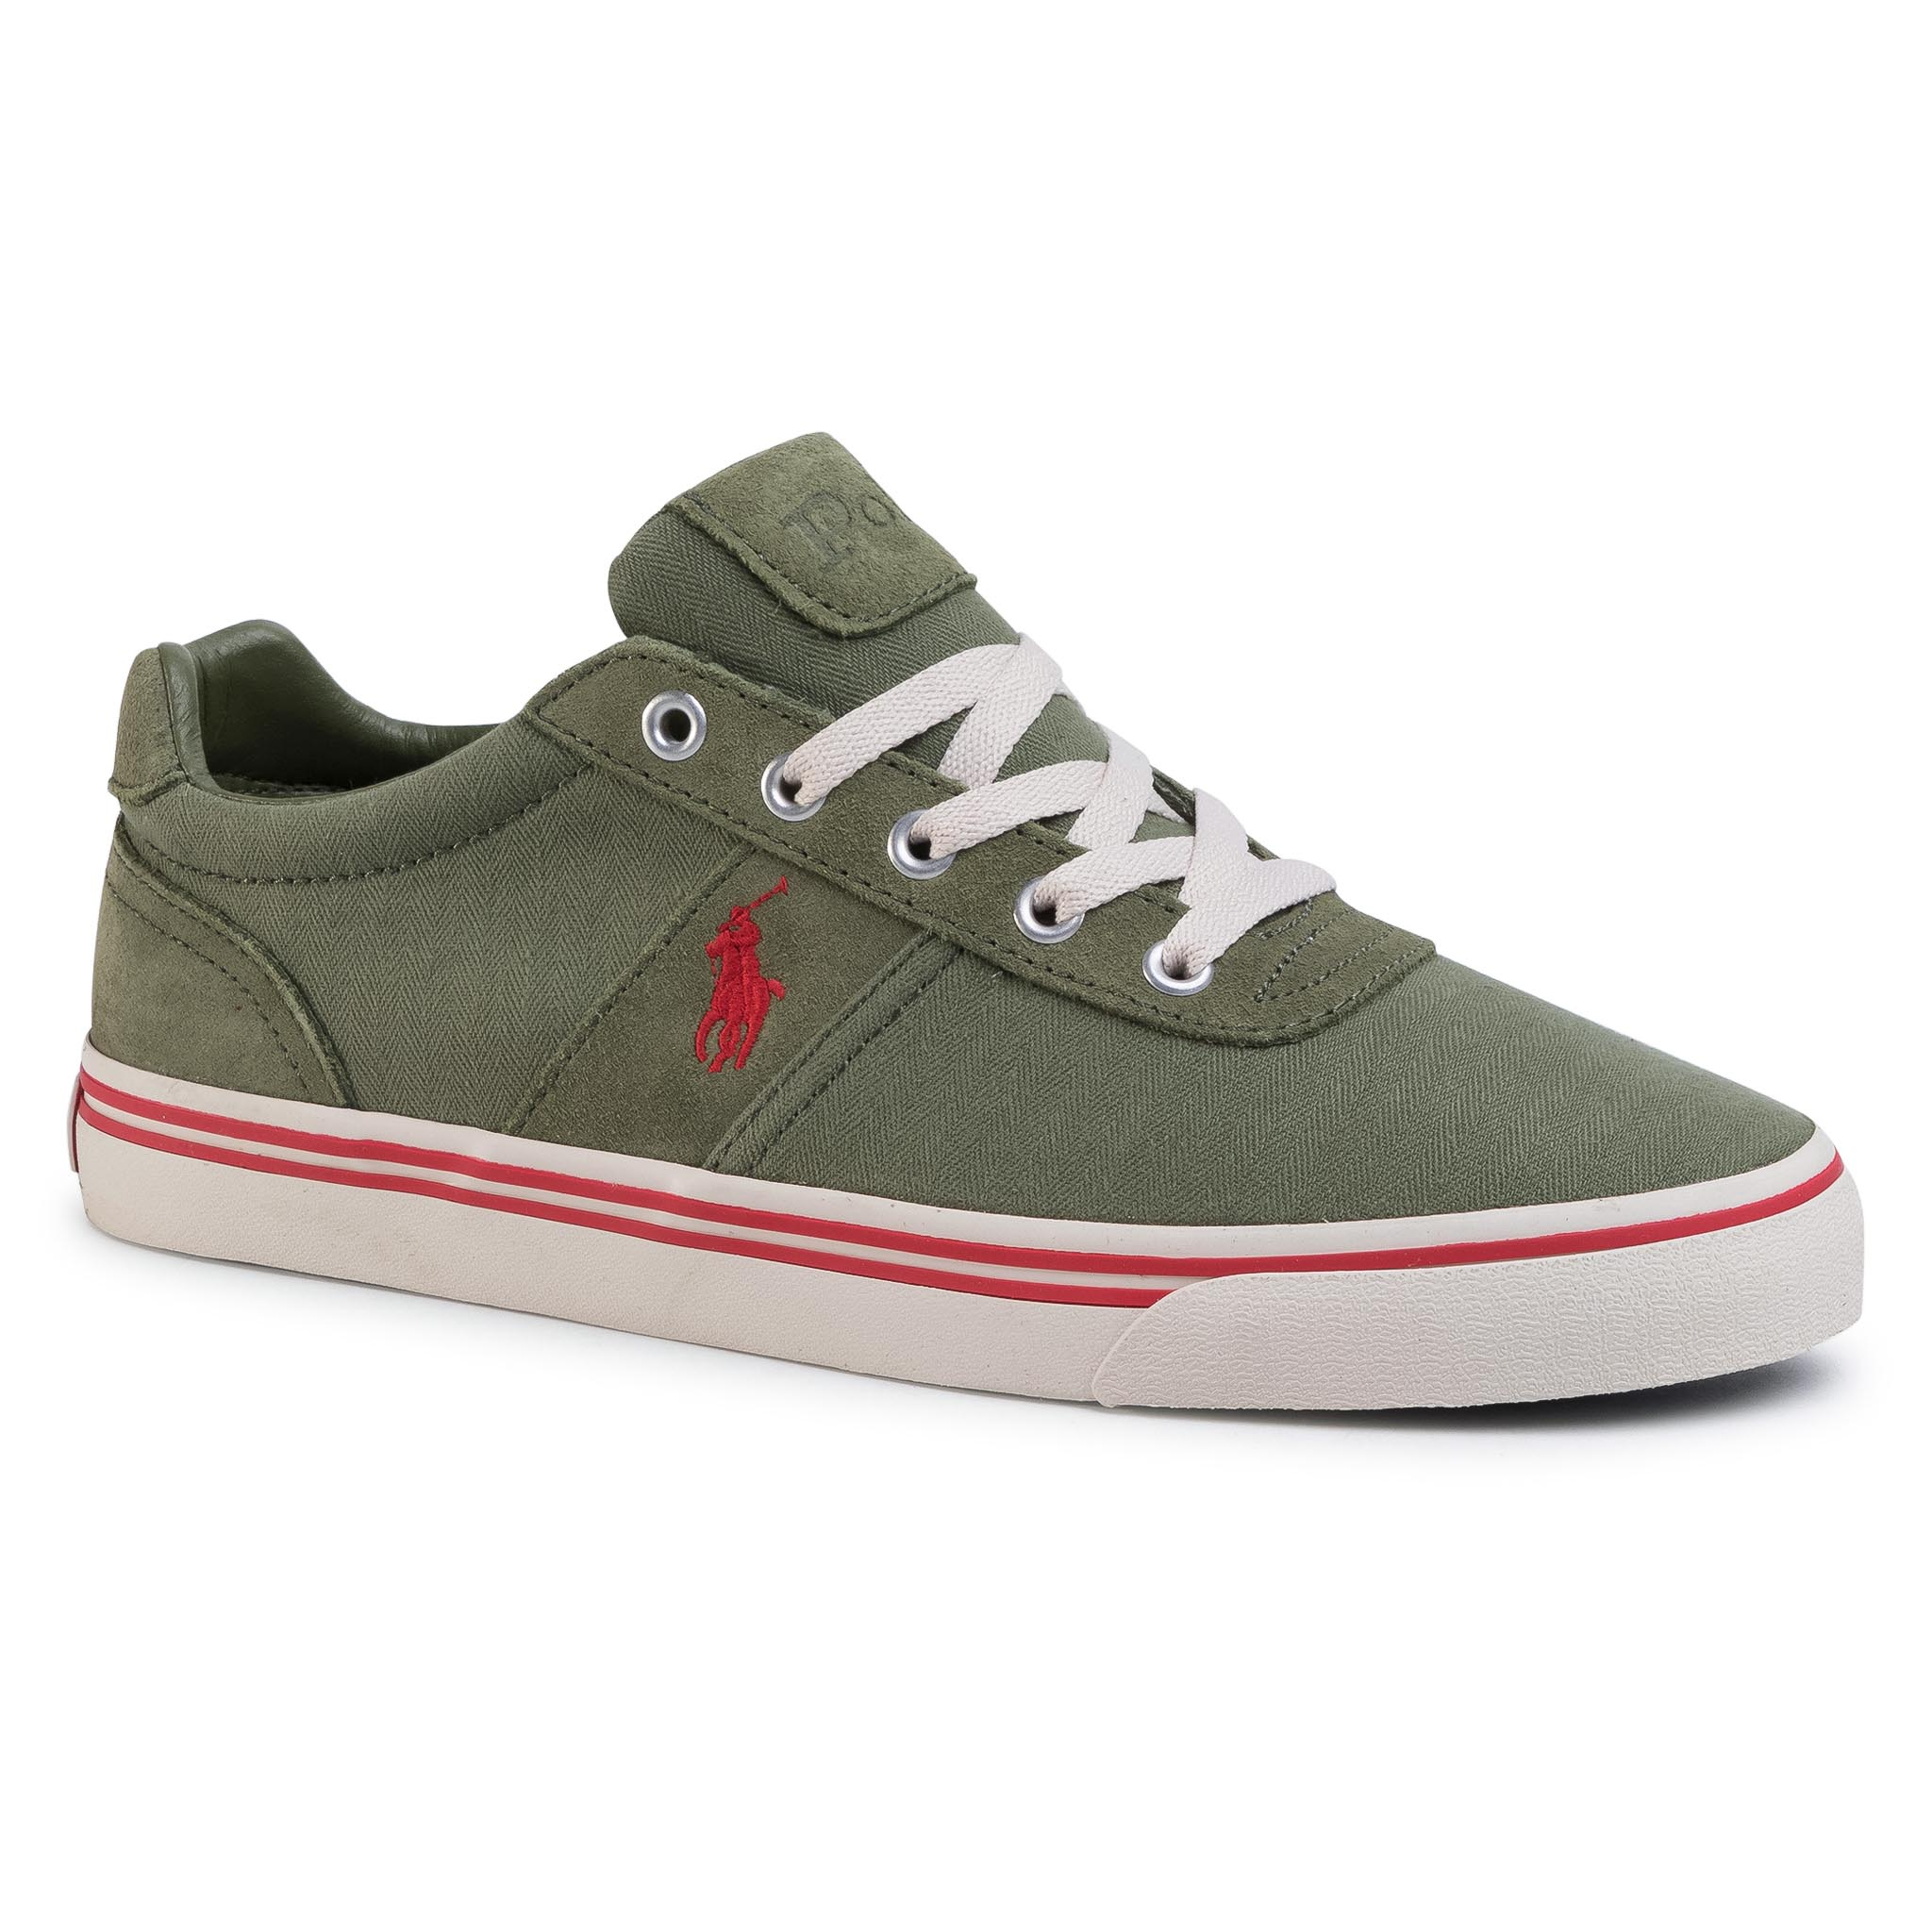 Teniși Polo Ralph Lauren - Hanford 816799510002 Green/Red Pp imagine epantofi.ro 2021